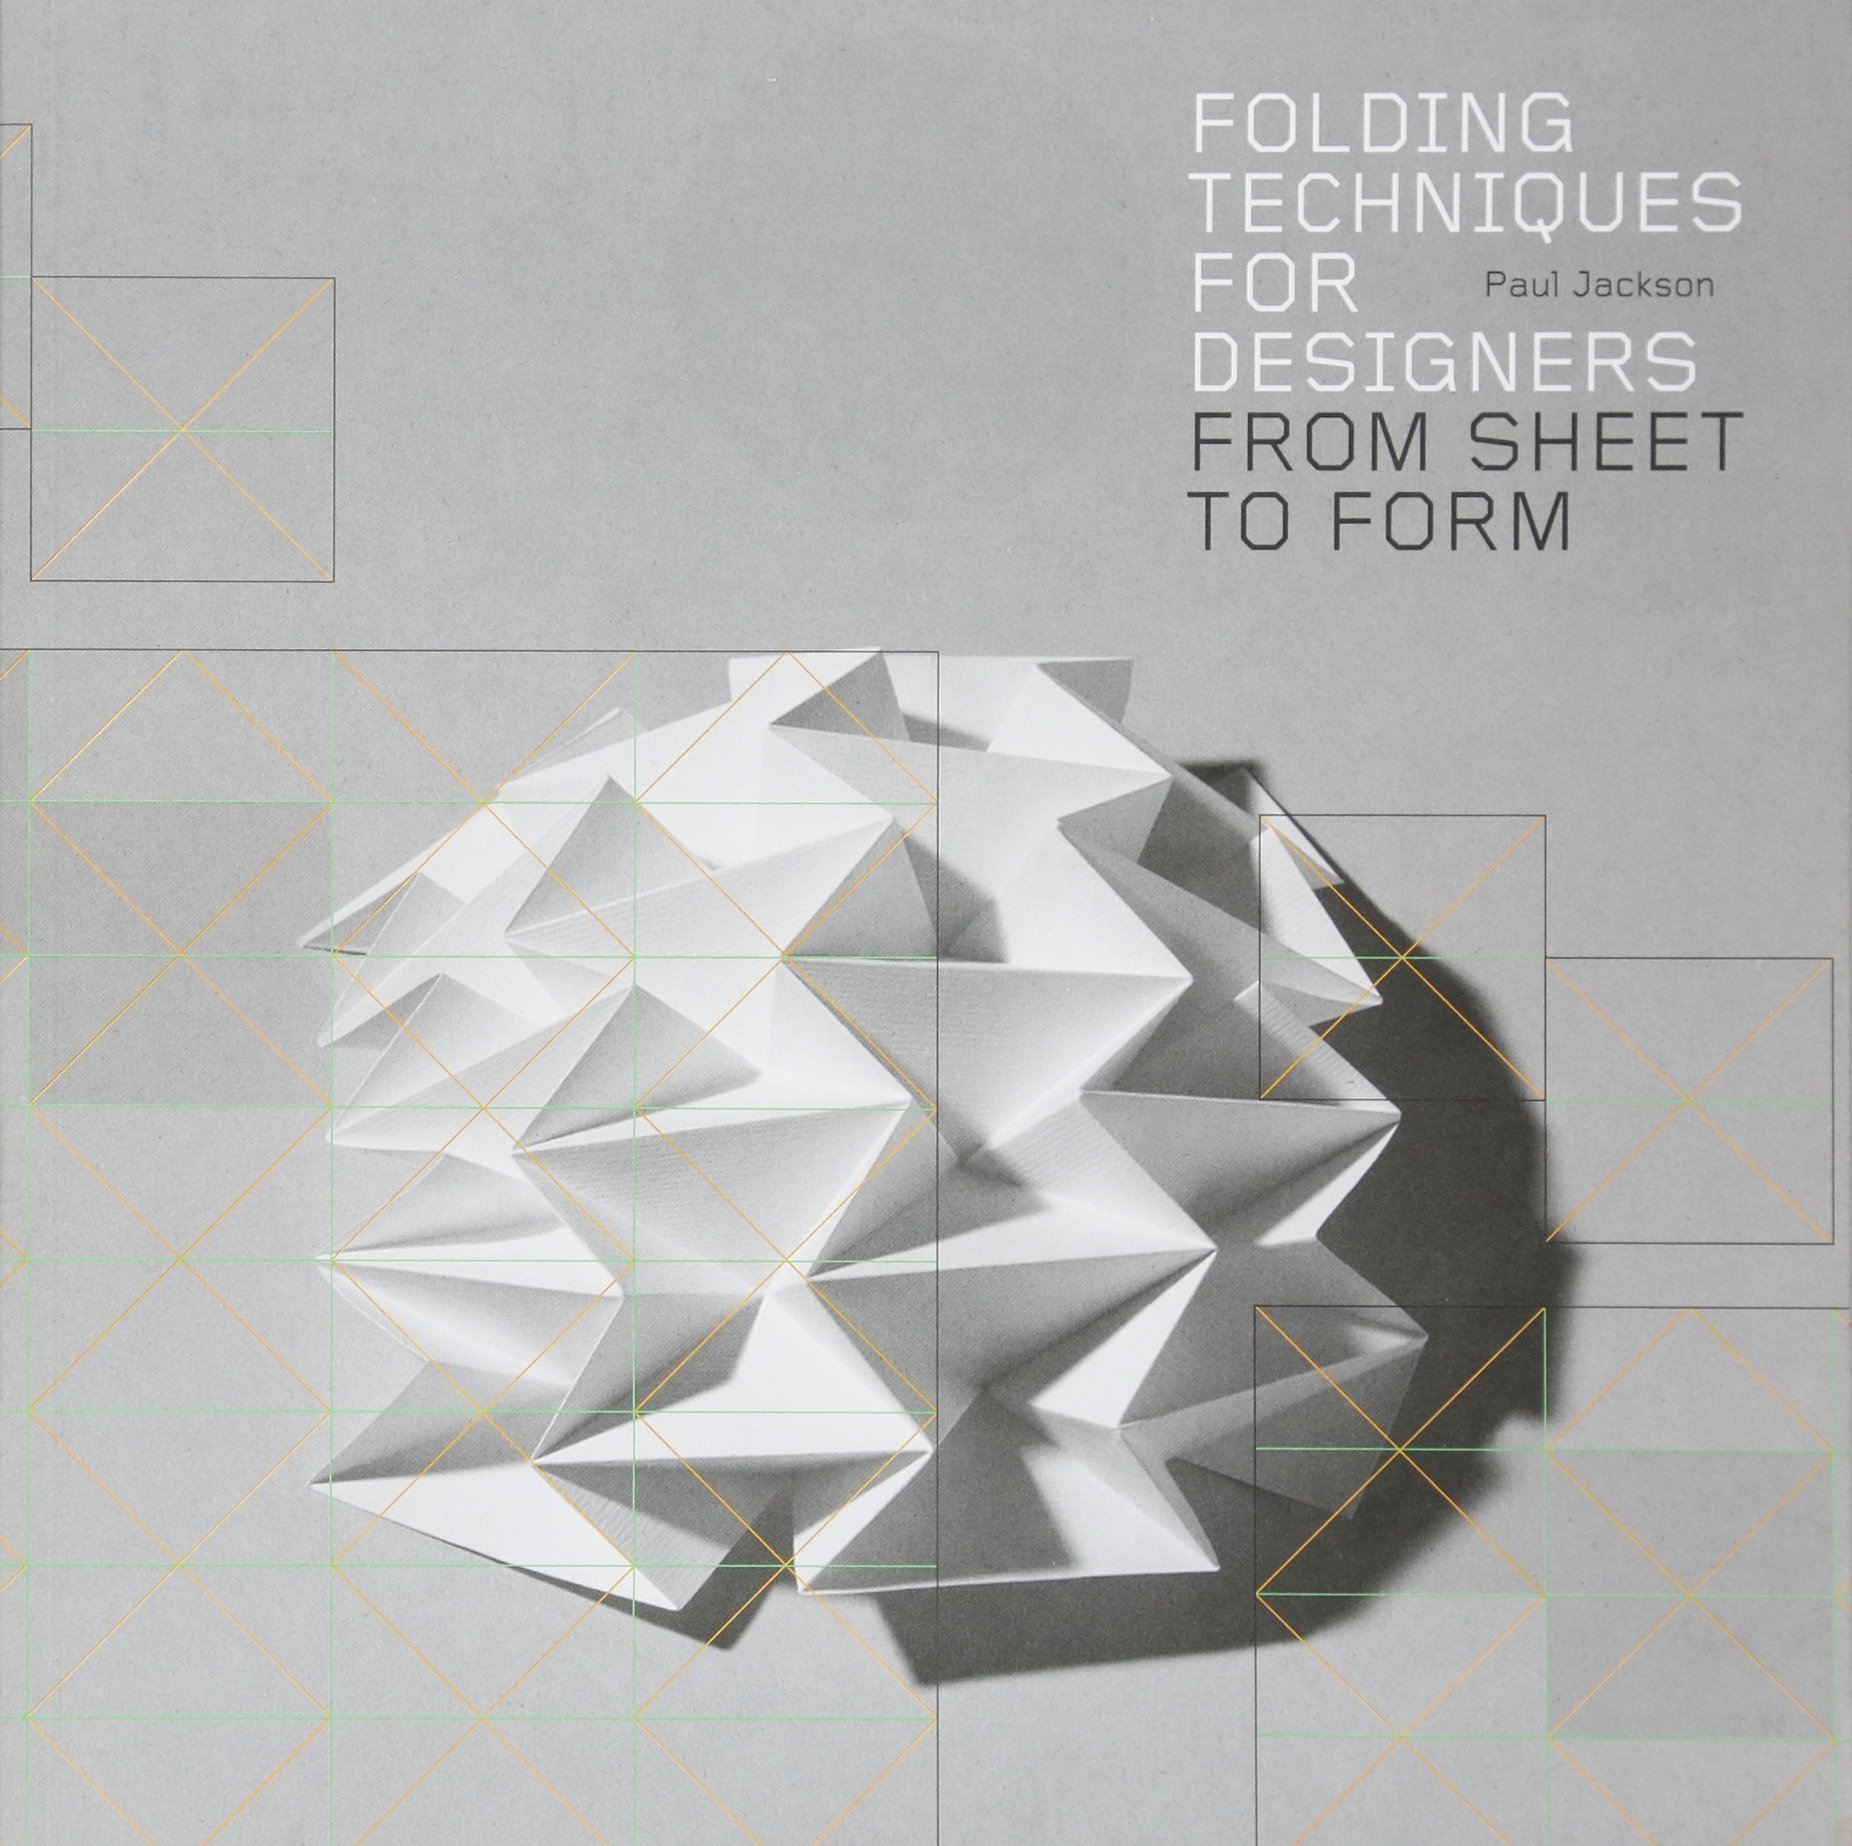 Folding Techniques for Designers: From Sheet to Form: Amazon.de ...